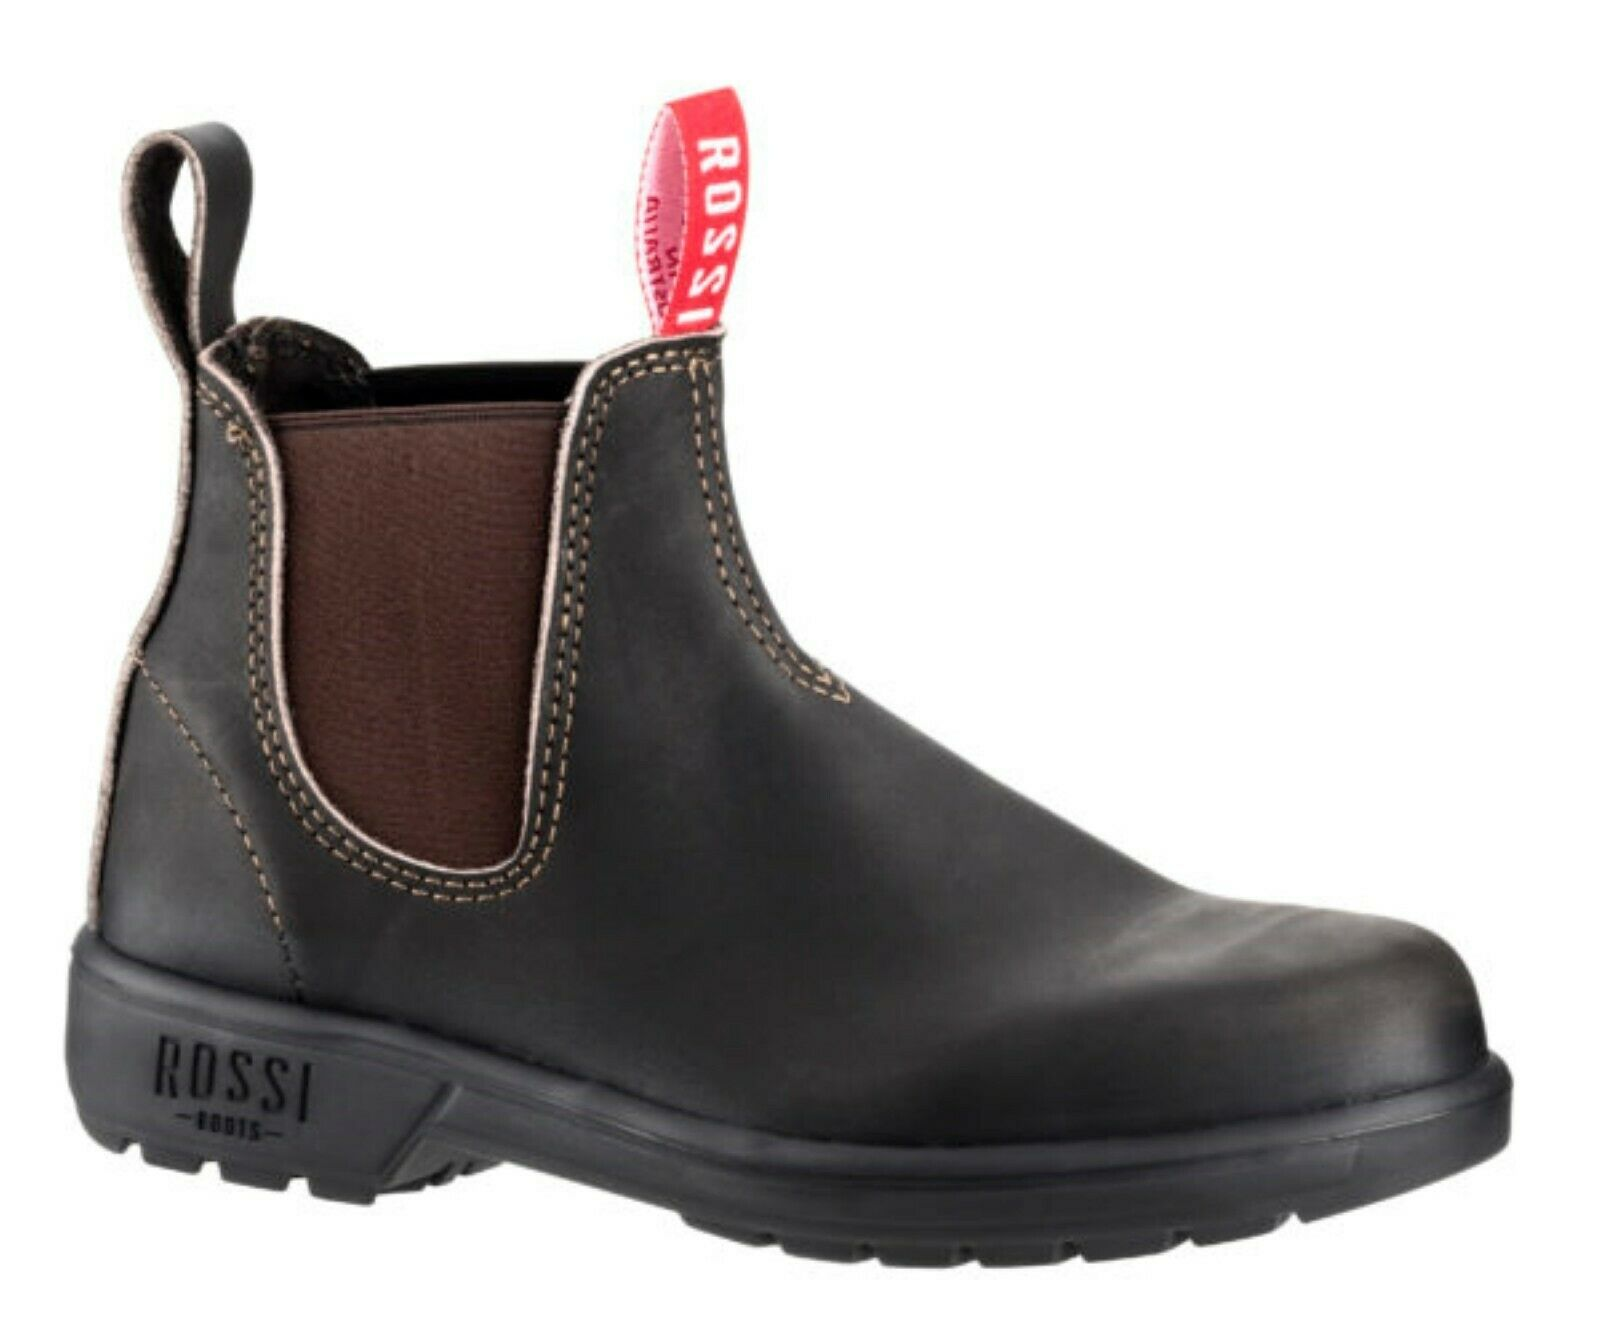 ROSSI BOOTS Endura Claret Brown Leather Dealer Classic Chelsea Boots Australia